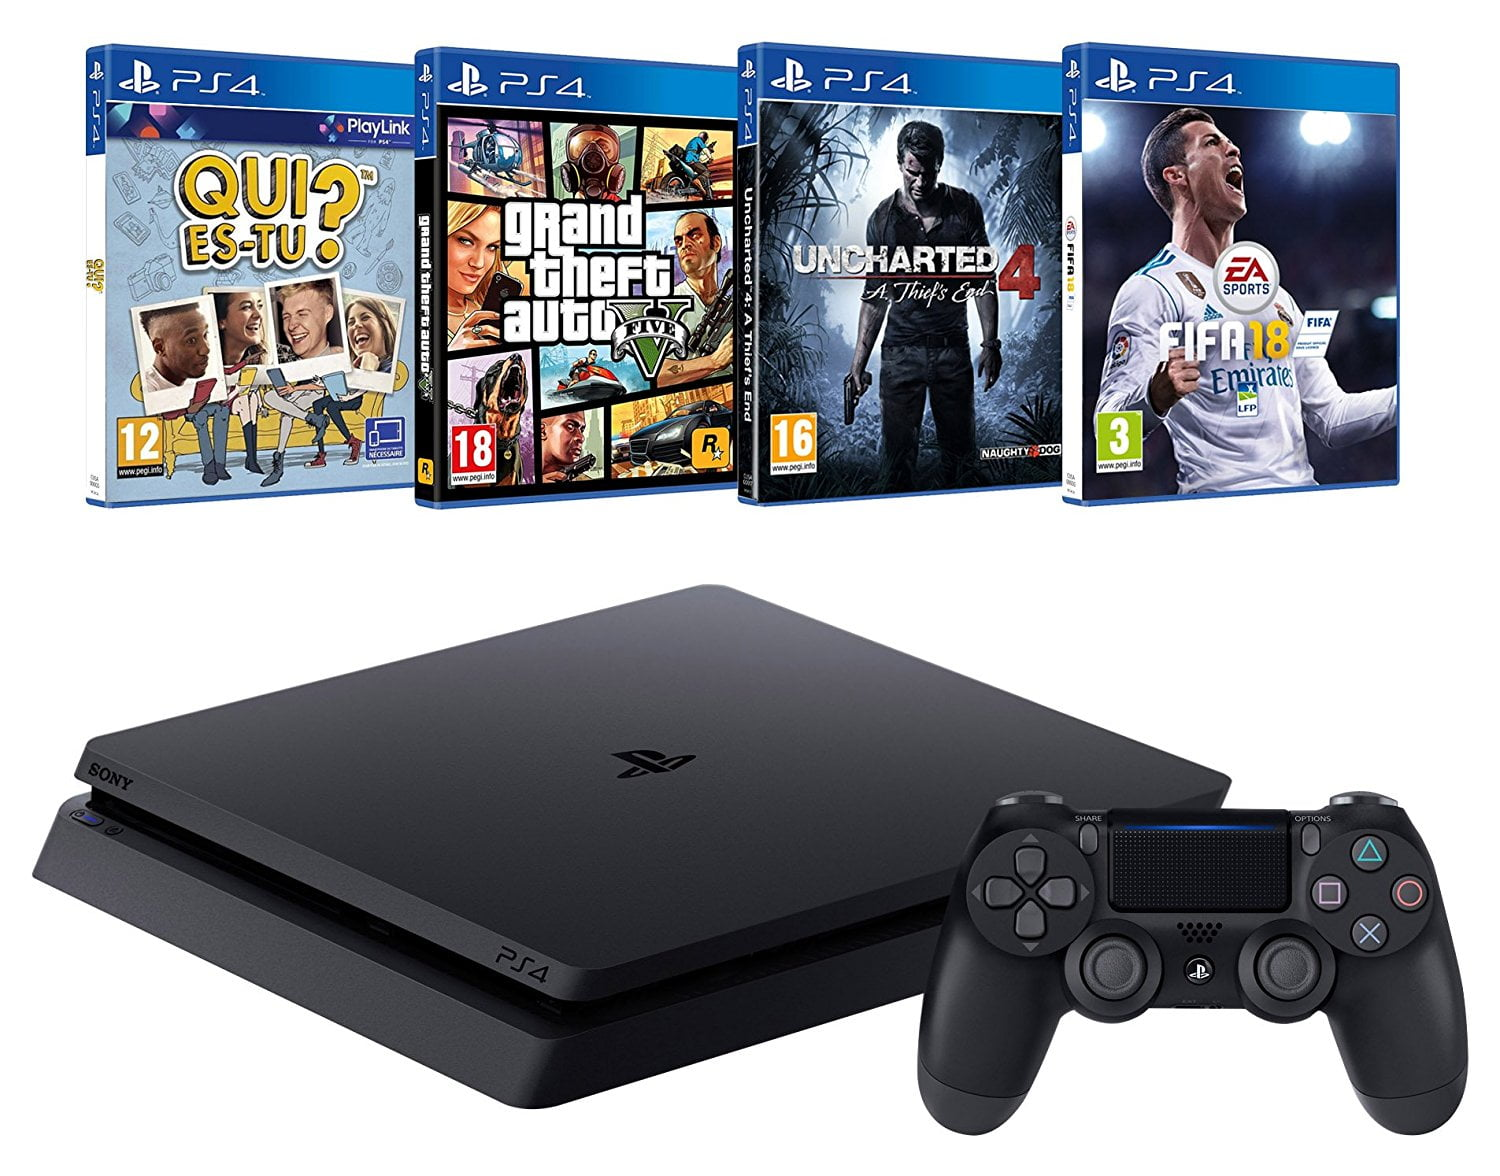 promo la ps4 4 jeux fifa 18 gta v uncharted 4 qui es tu 299 seulement. Black Bedroom Furniture Sets. Home Design Ideas